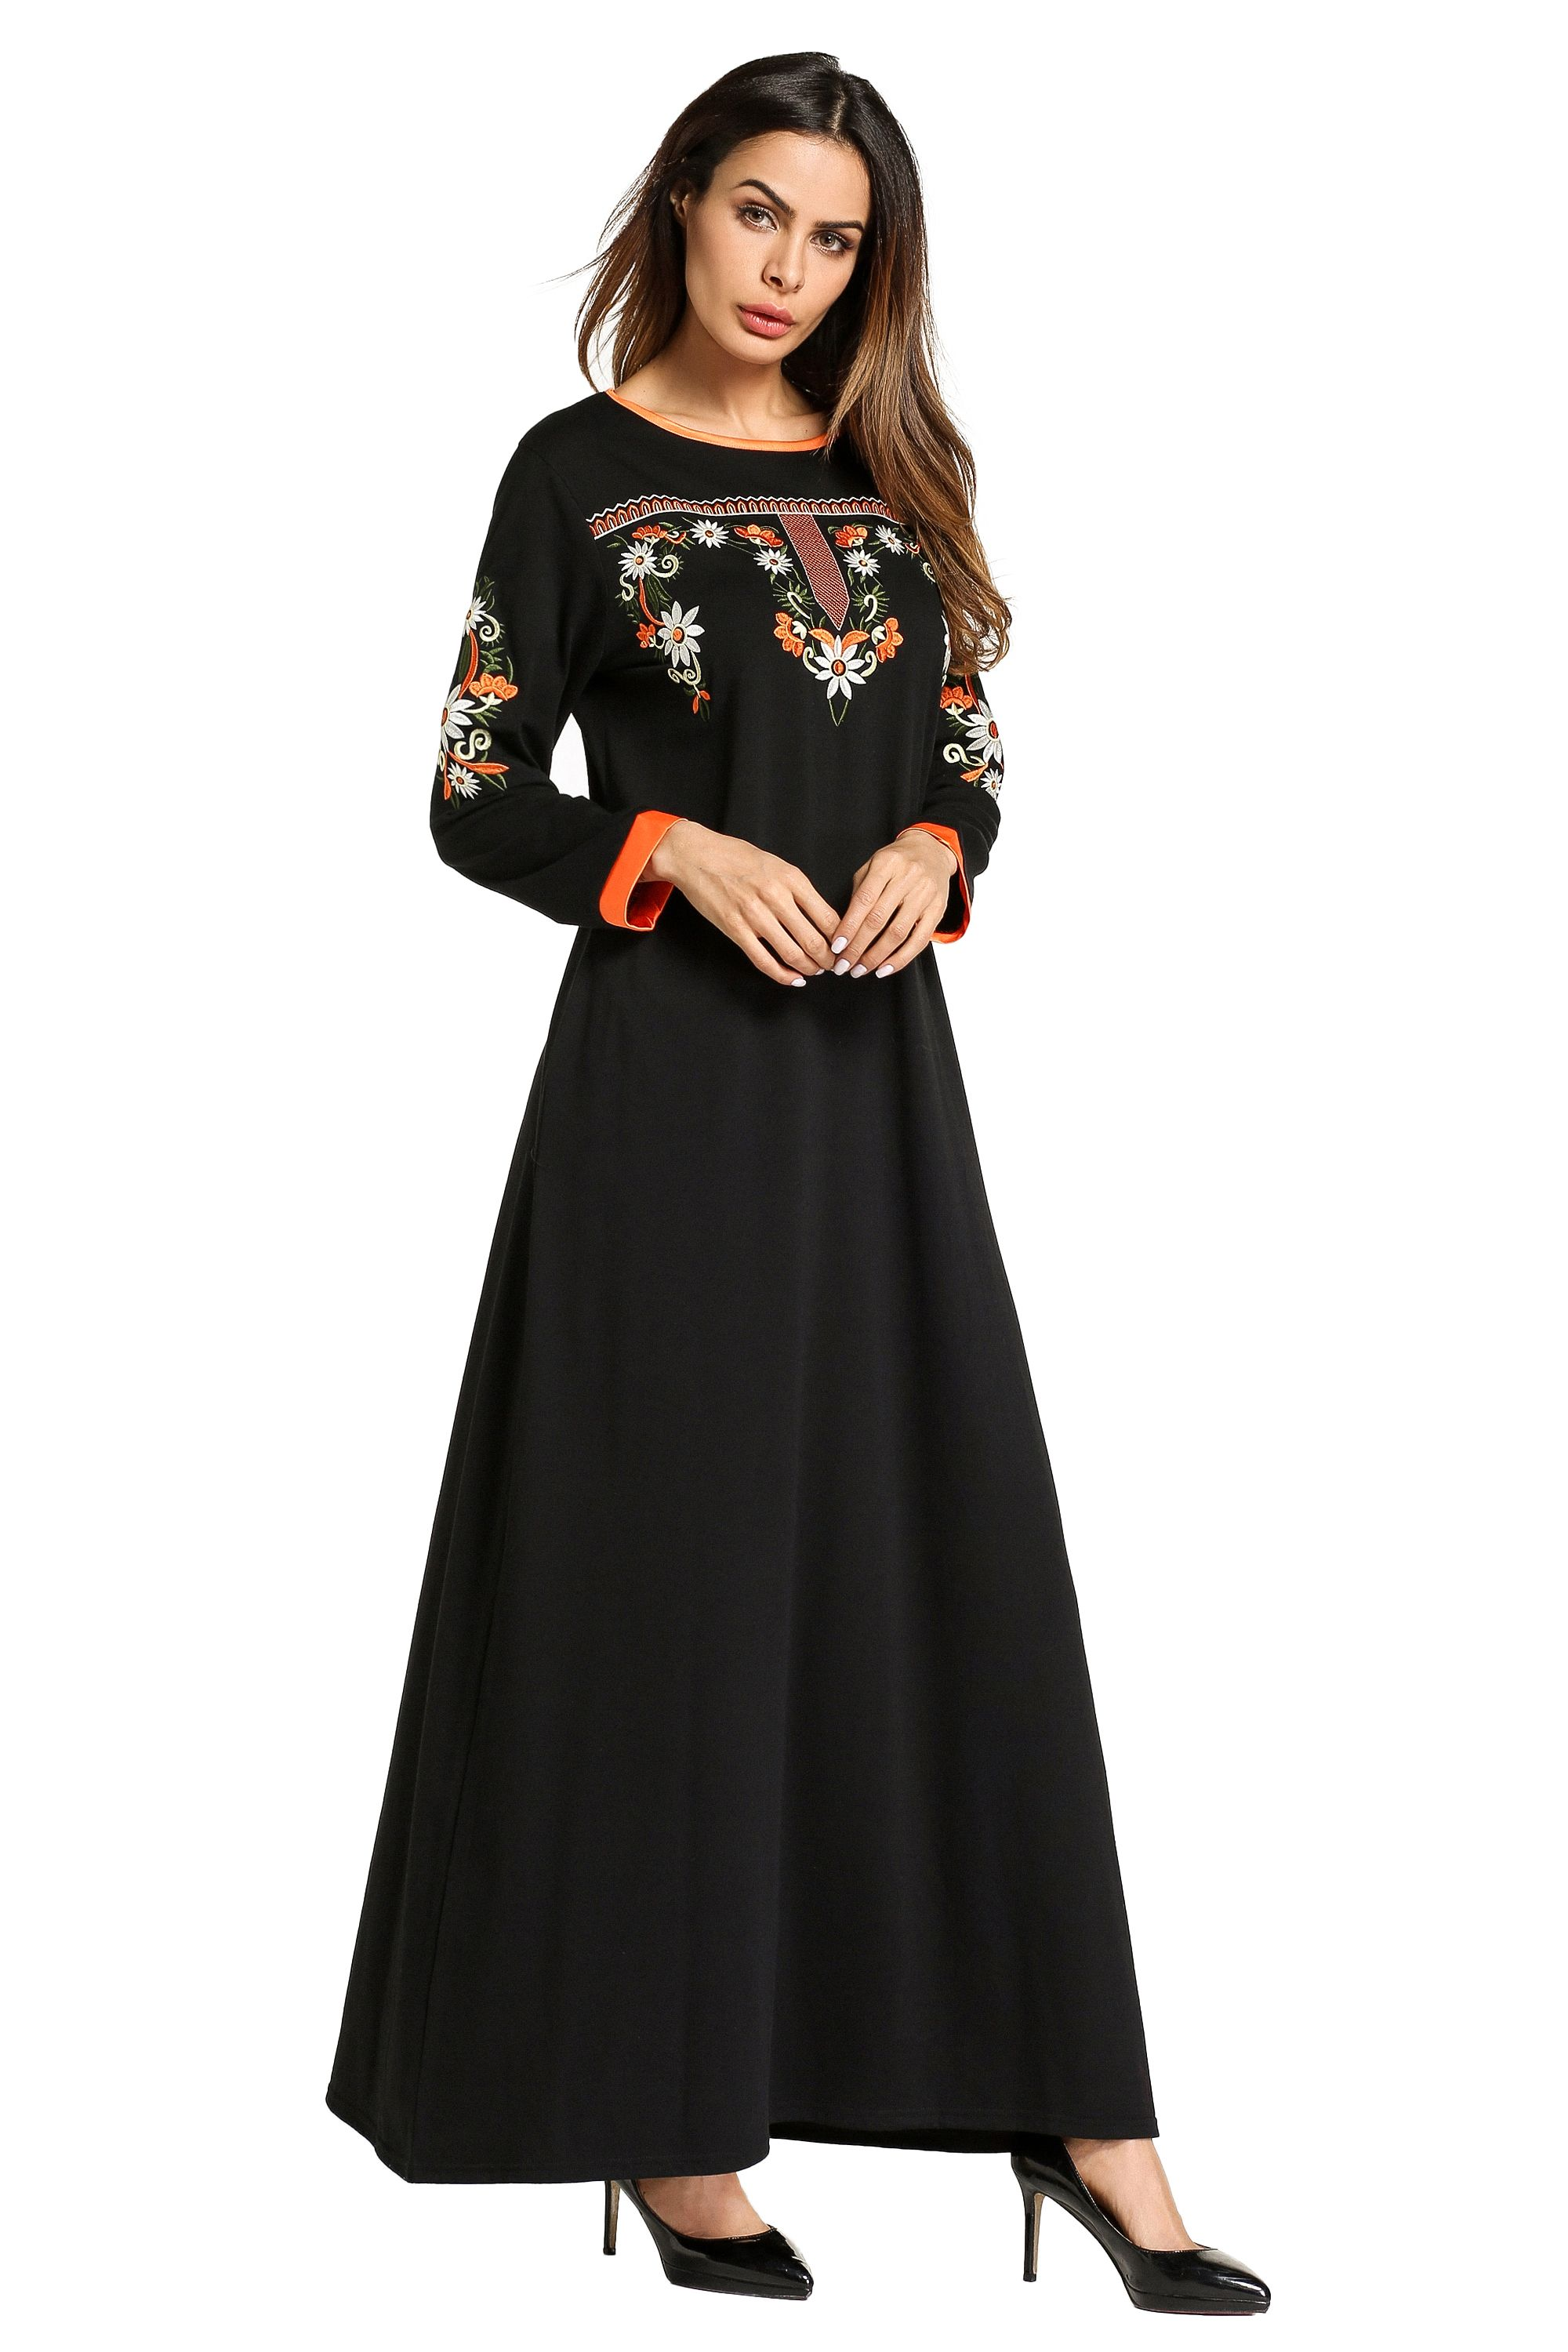 Muslim Long Sleeved Embroidered Dress Welcome To The Website To Contact Retail And Wh Long Sleeve Embroidered Dress Black Long Sleeve Dress Maxi Dress Cocktail [ 3000 x 2000 Pixel ]